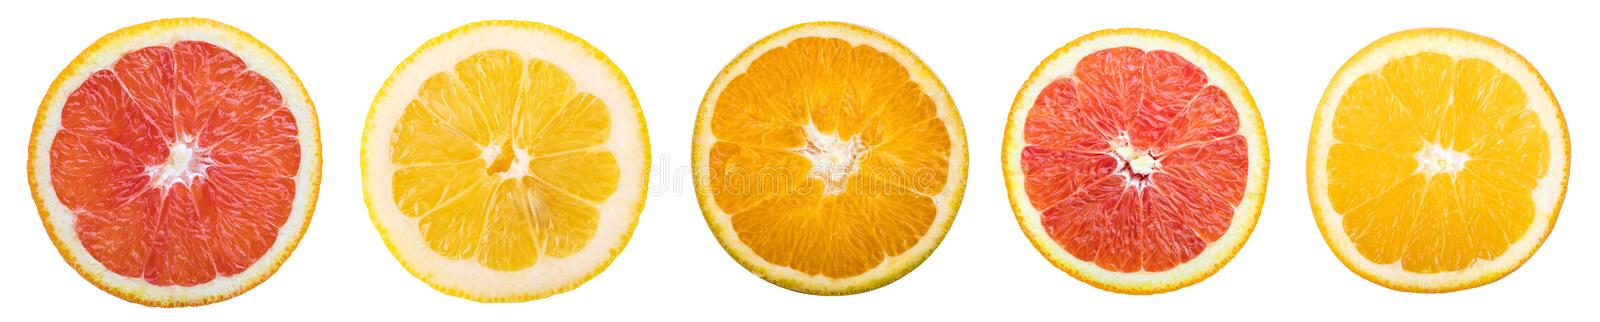 Citrus fruit. Slices isolated on white background. Collection royalty free stock images